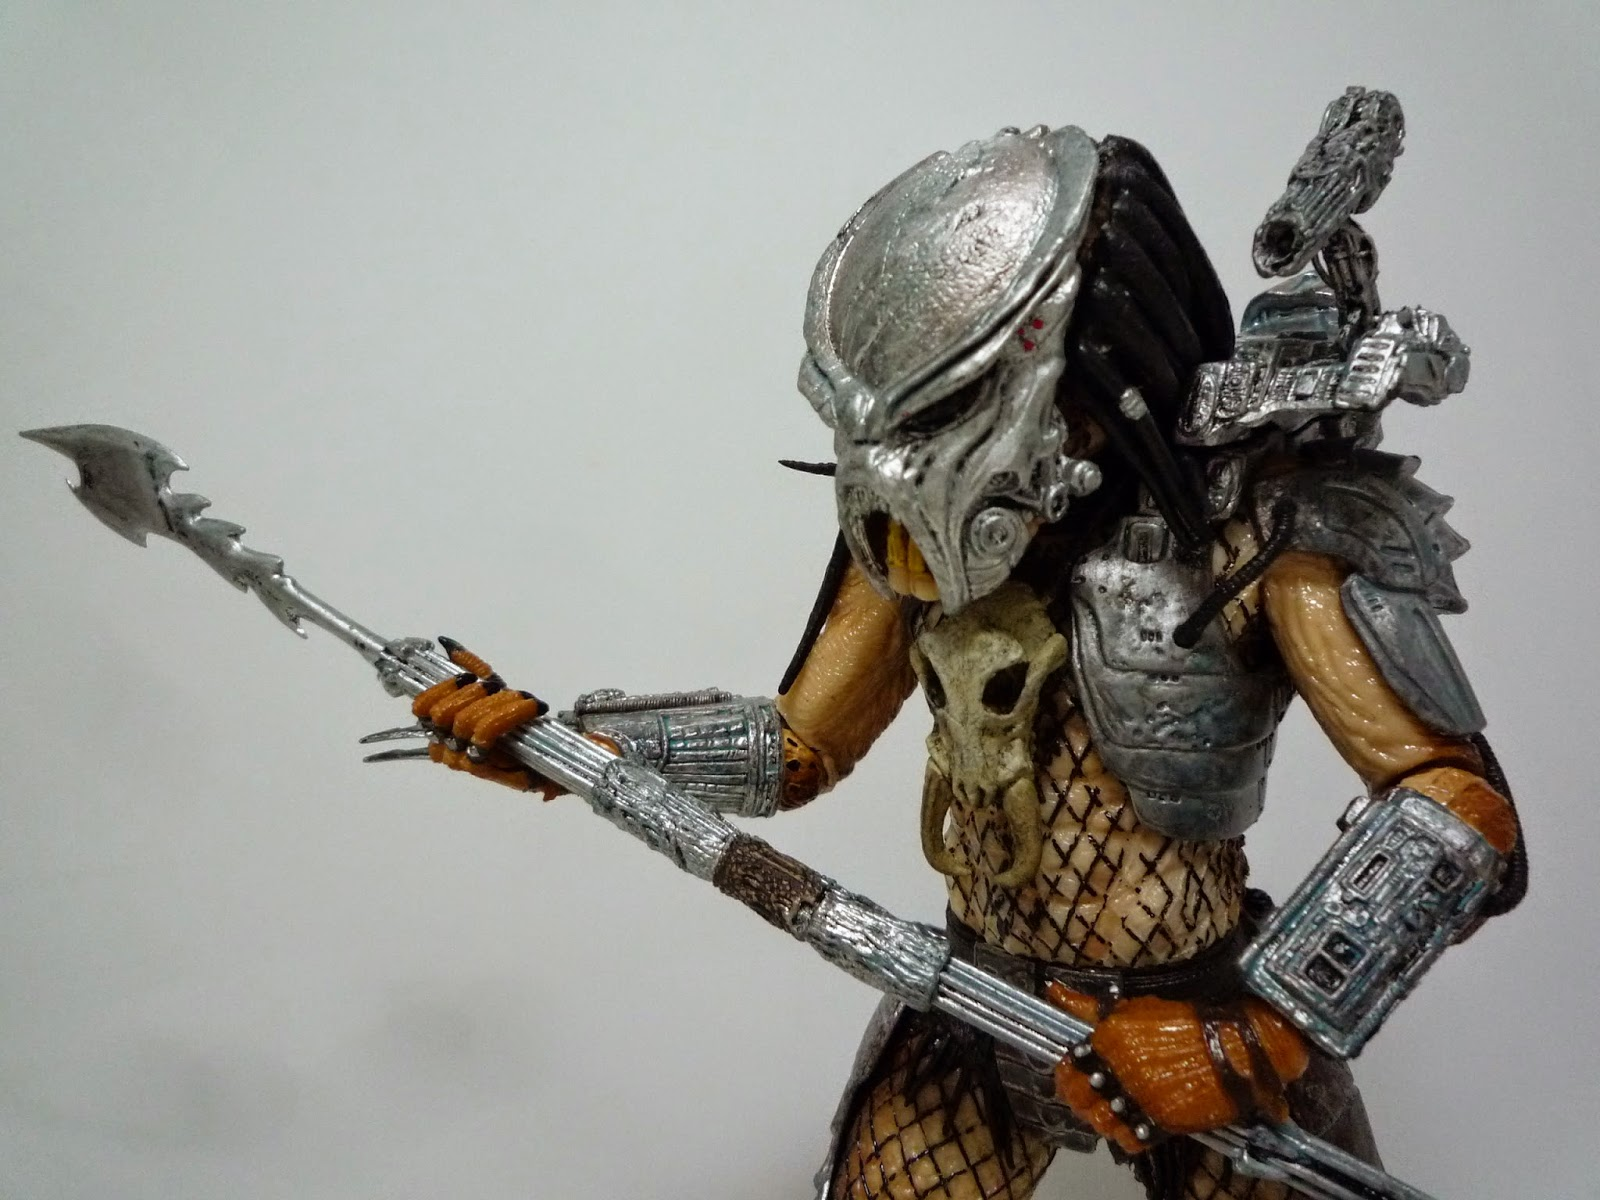 Predator Avp Model Doll Cheap Sales 50% Romantic 18cm Neca Aliens Action Figure Ricco Frost Private Figure Toy With Weapon Helmet Alien Vs Action & Toy Figures